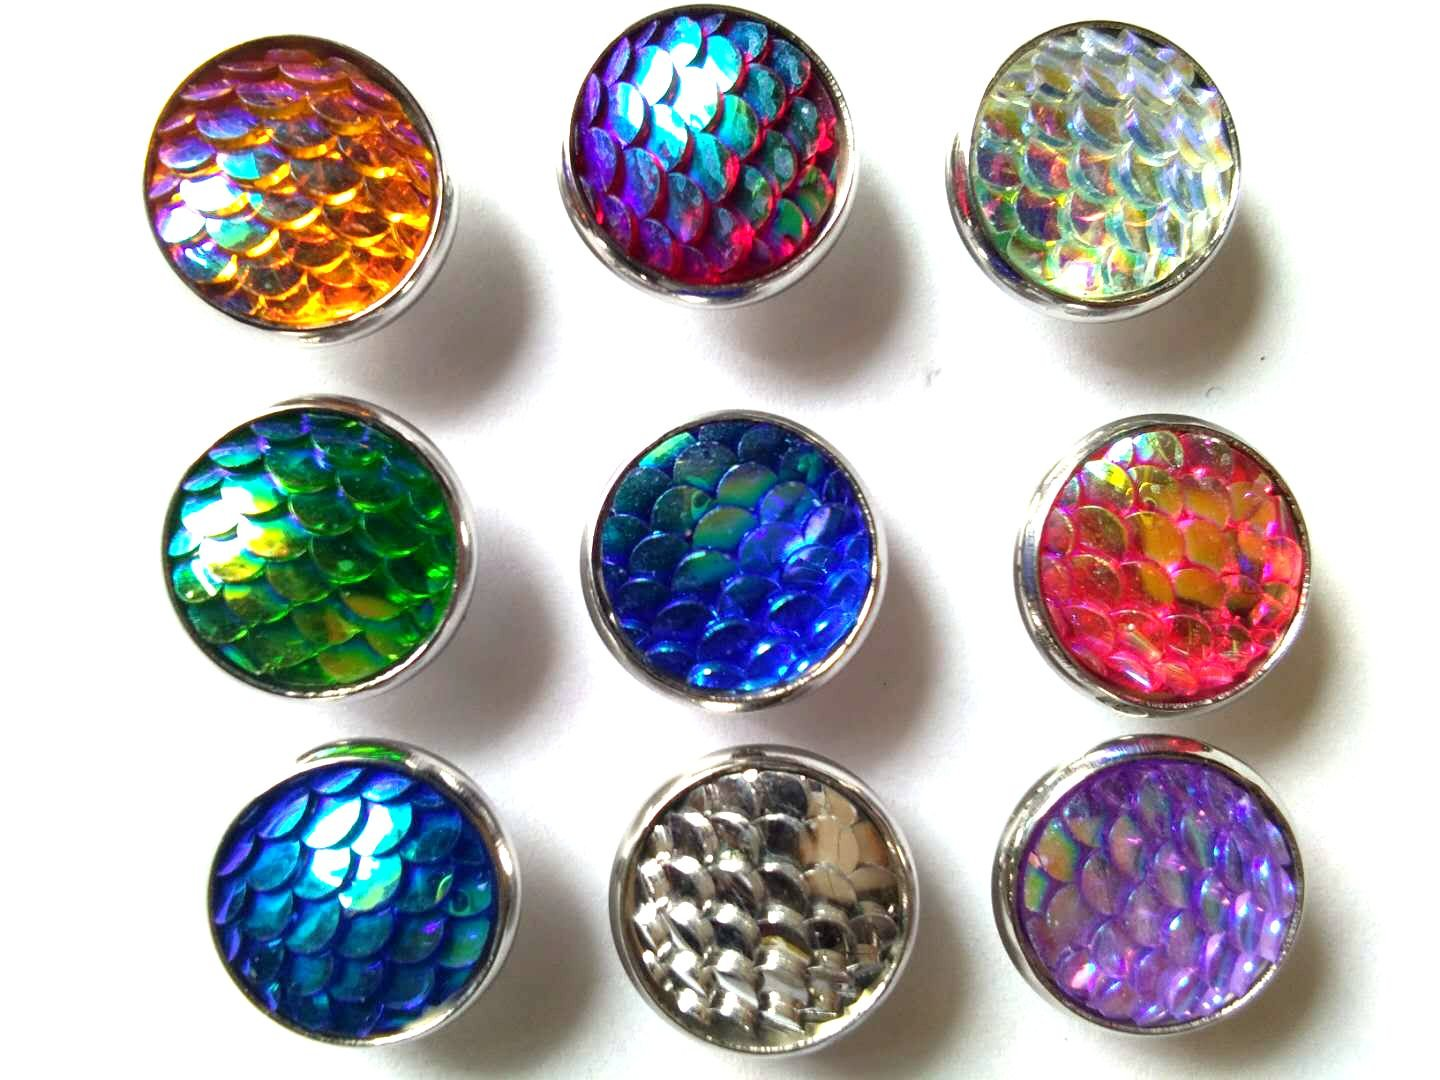 20pairs lot Color Change Ocean fashion Style Mermaid Scales Stud Earrings for Women Girl Gift (mixed colors)